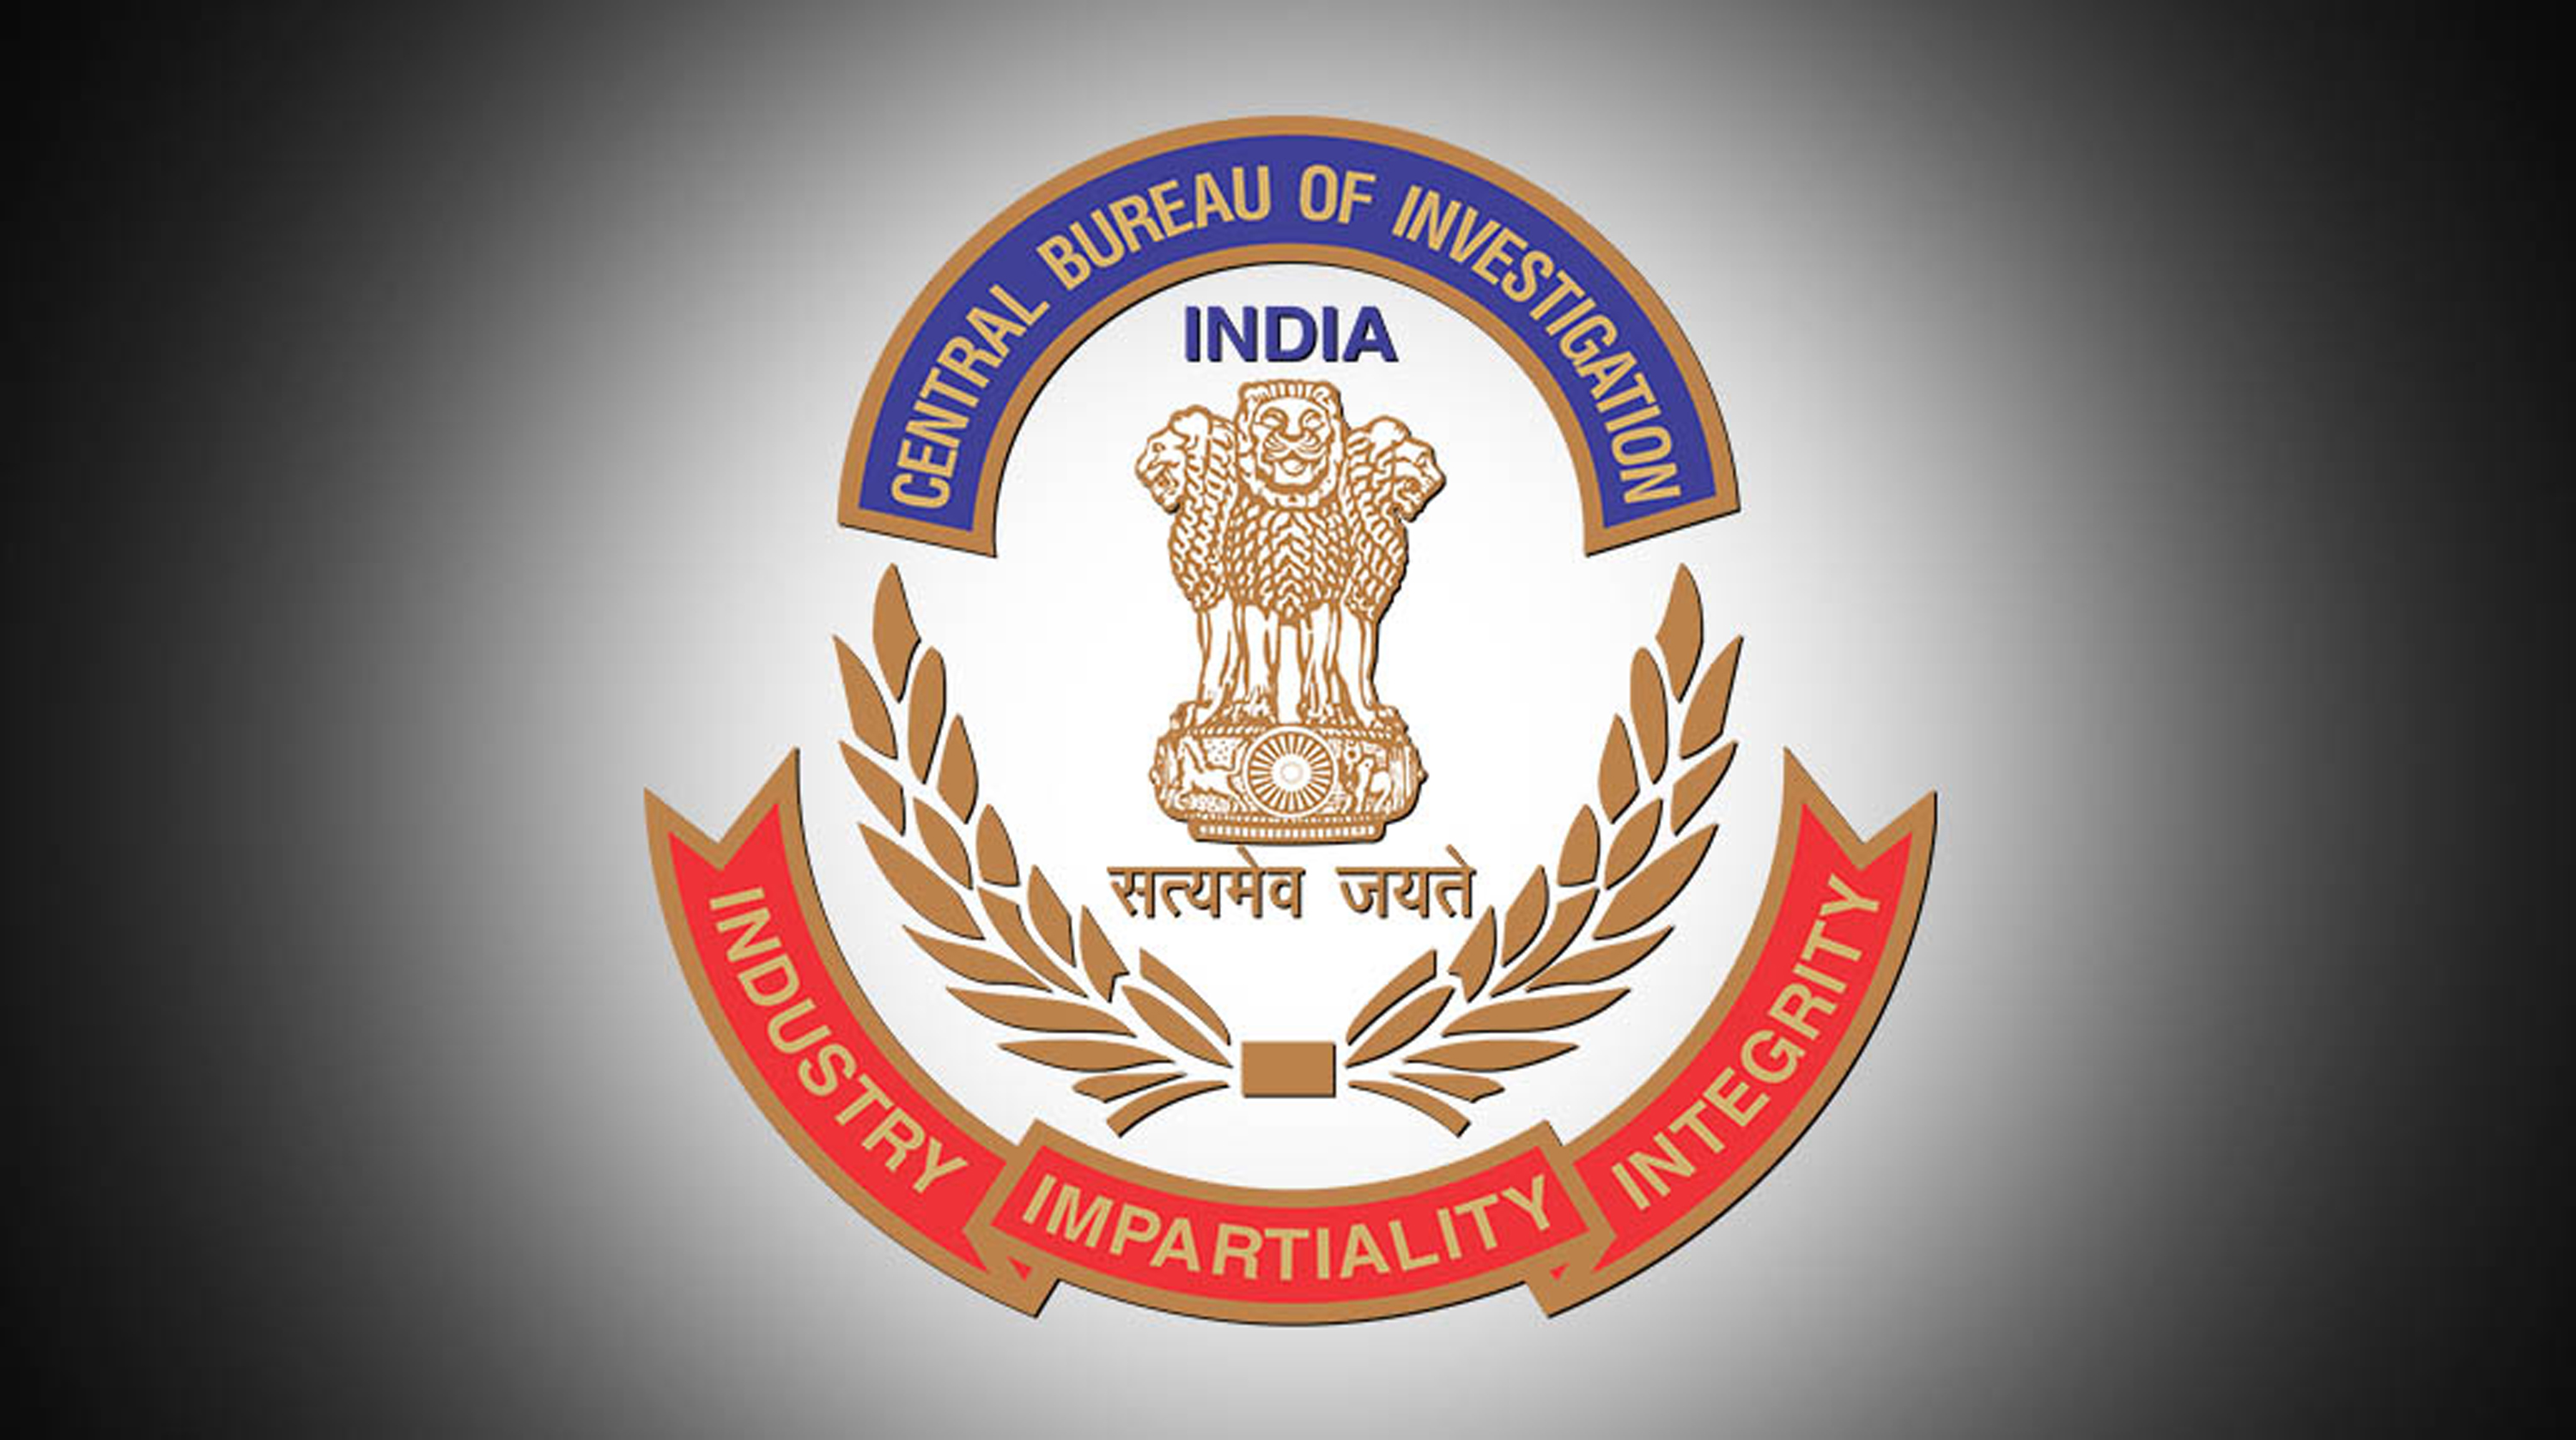 CBI raids 20 locations in connection with alleged irregularities in IIT-JEE (Mains) exam